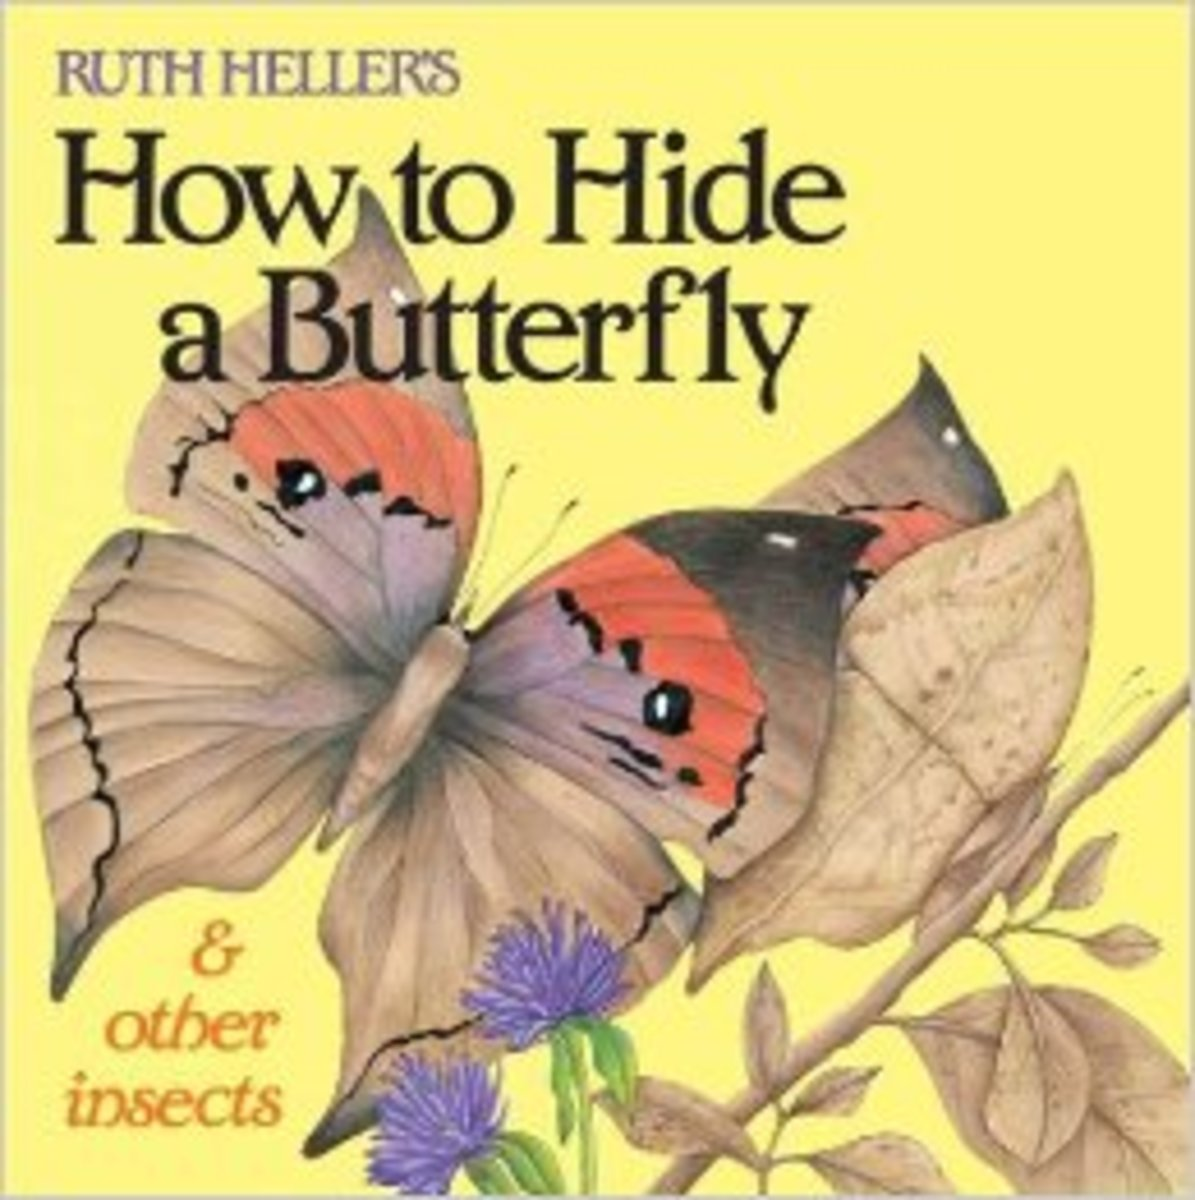 How to Hide a Butterfly and Other Insects (Reading Railroad Books) by Ruth Heller